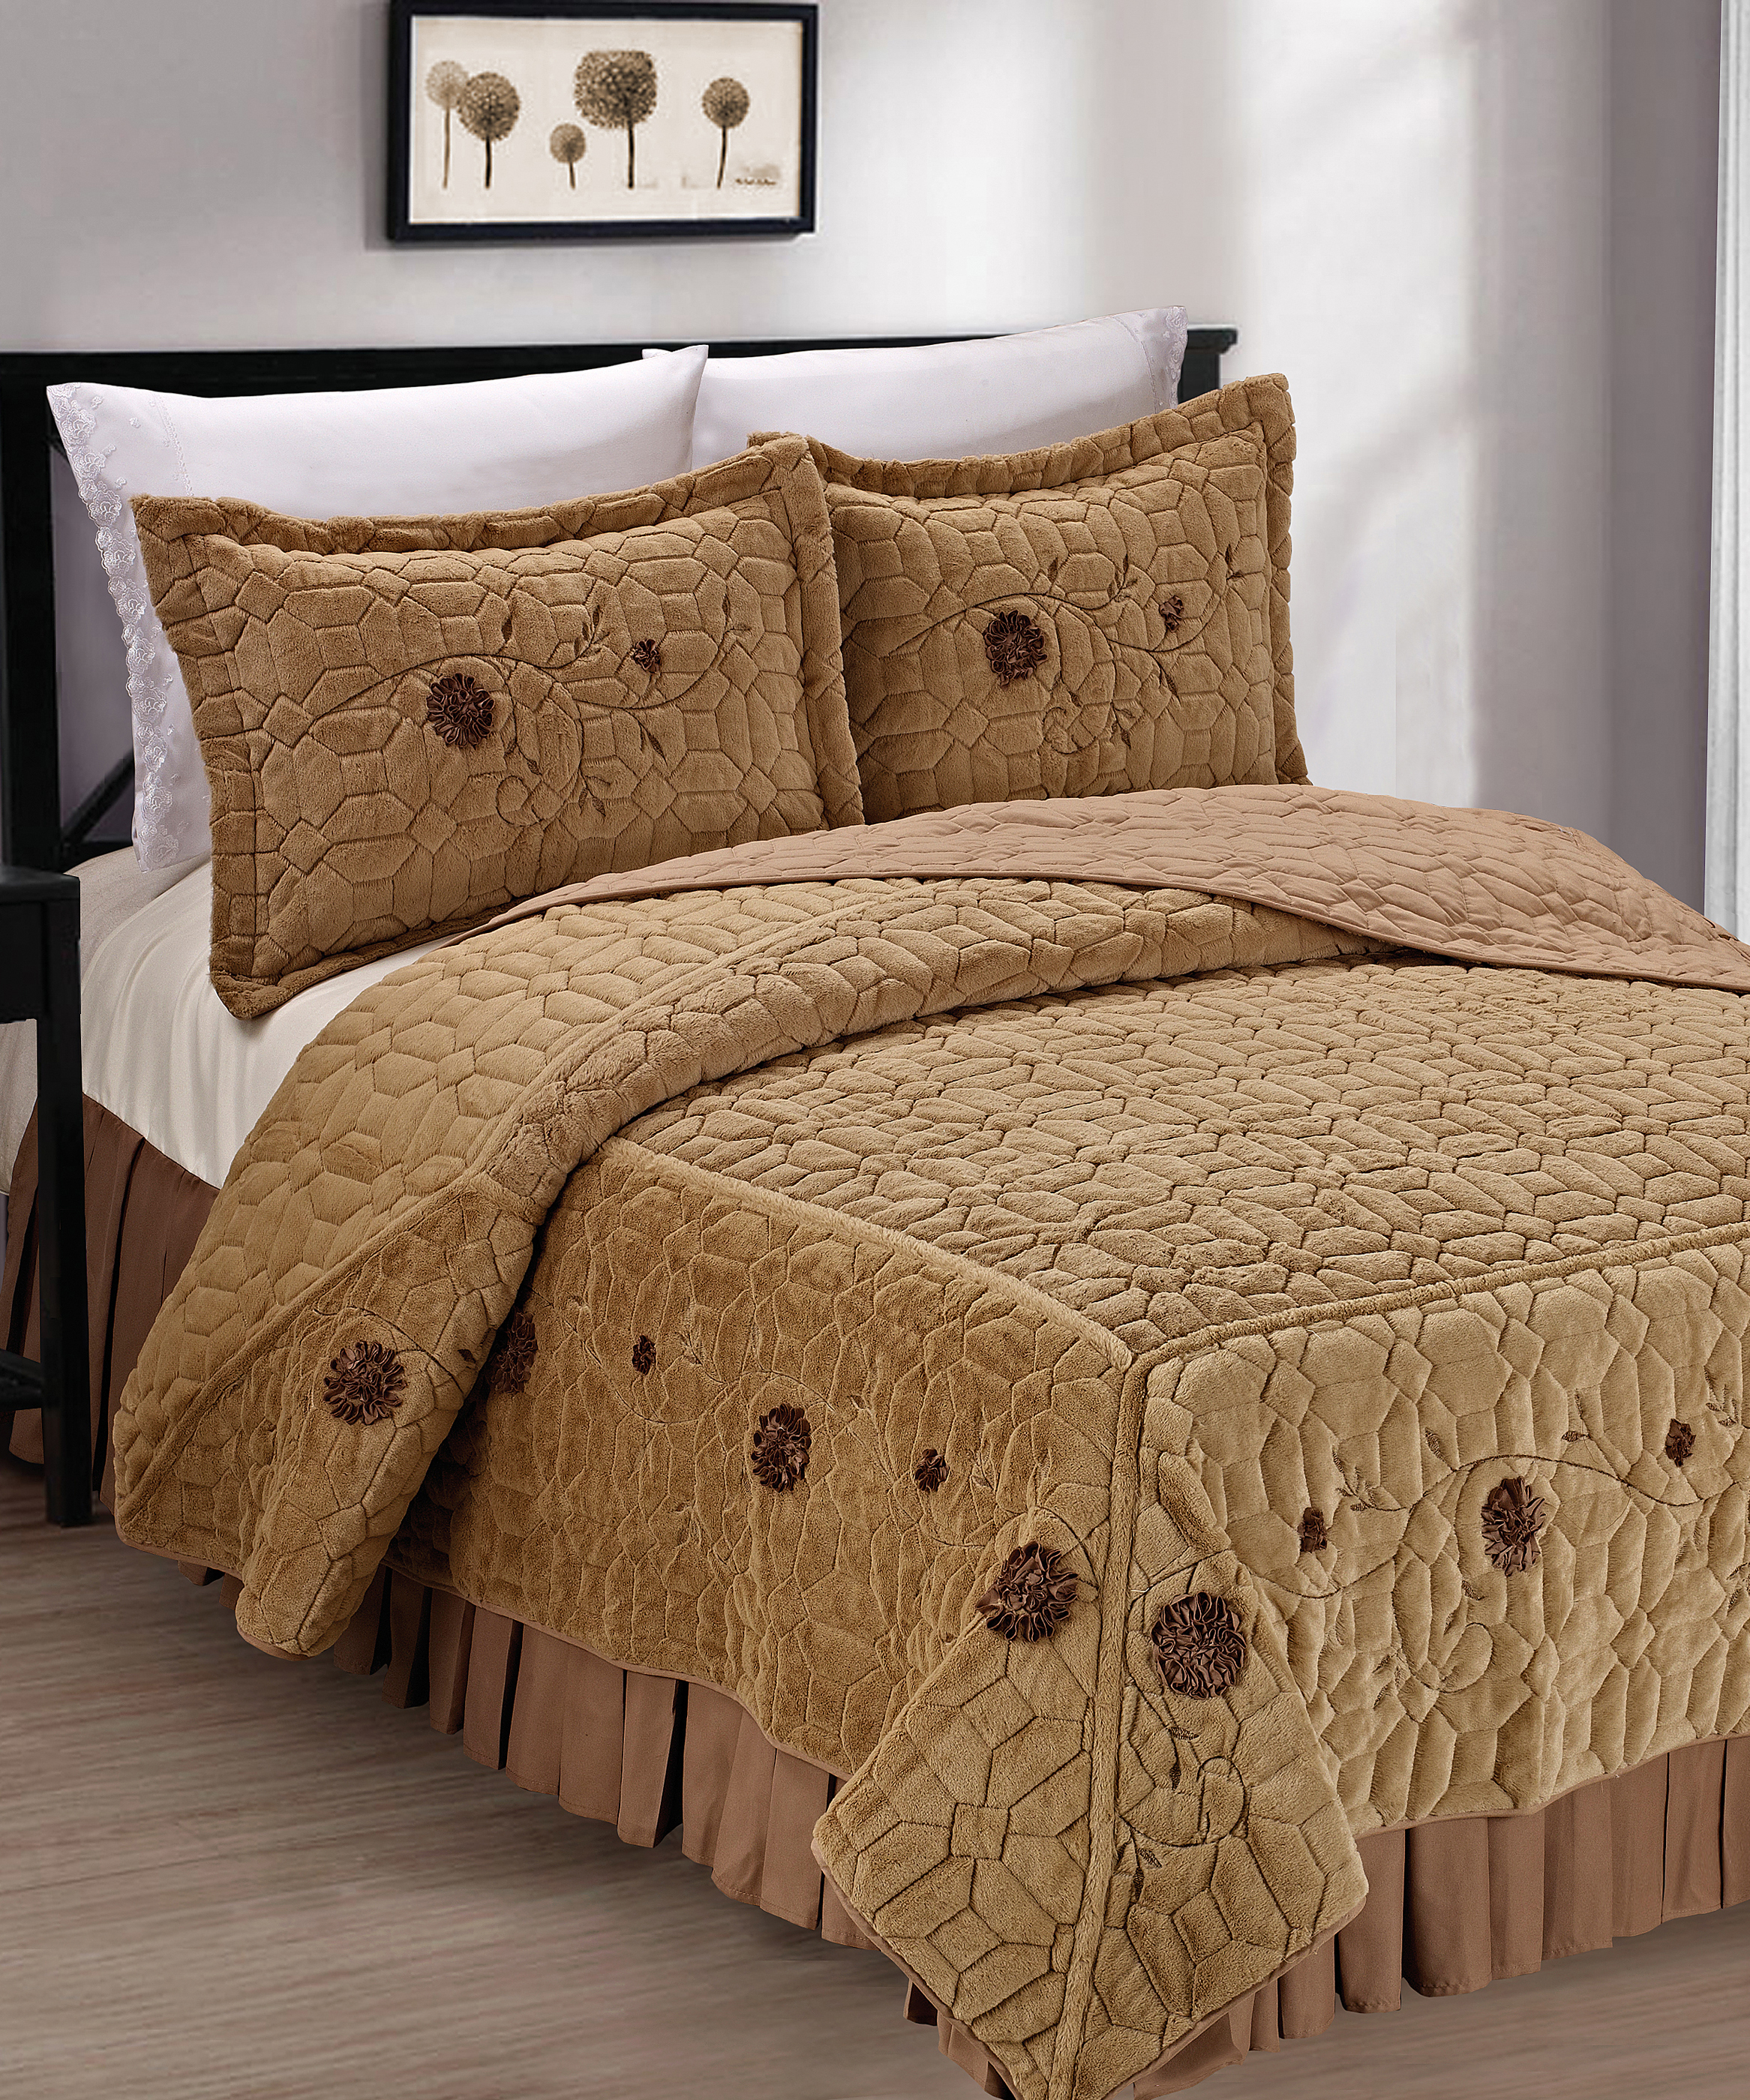 Ribbon embroidery bedspread designs - Faux Fur Ribbon Embroidery Bedspread Set